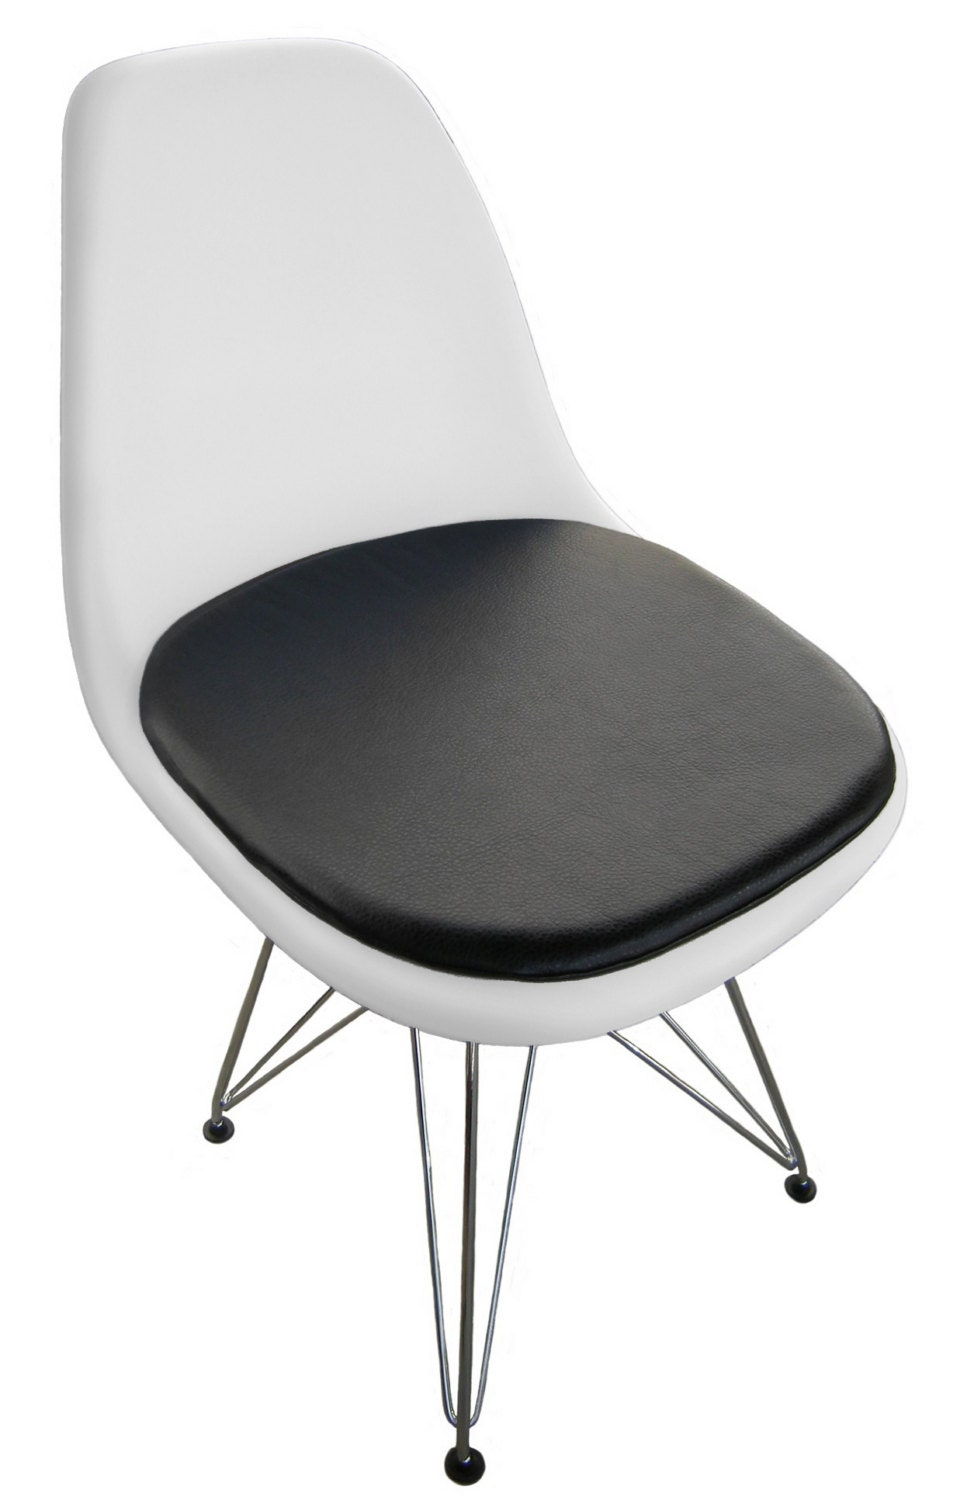 Cushion for eames molded plastic side chair by studiocityloft for Eames coussin